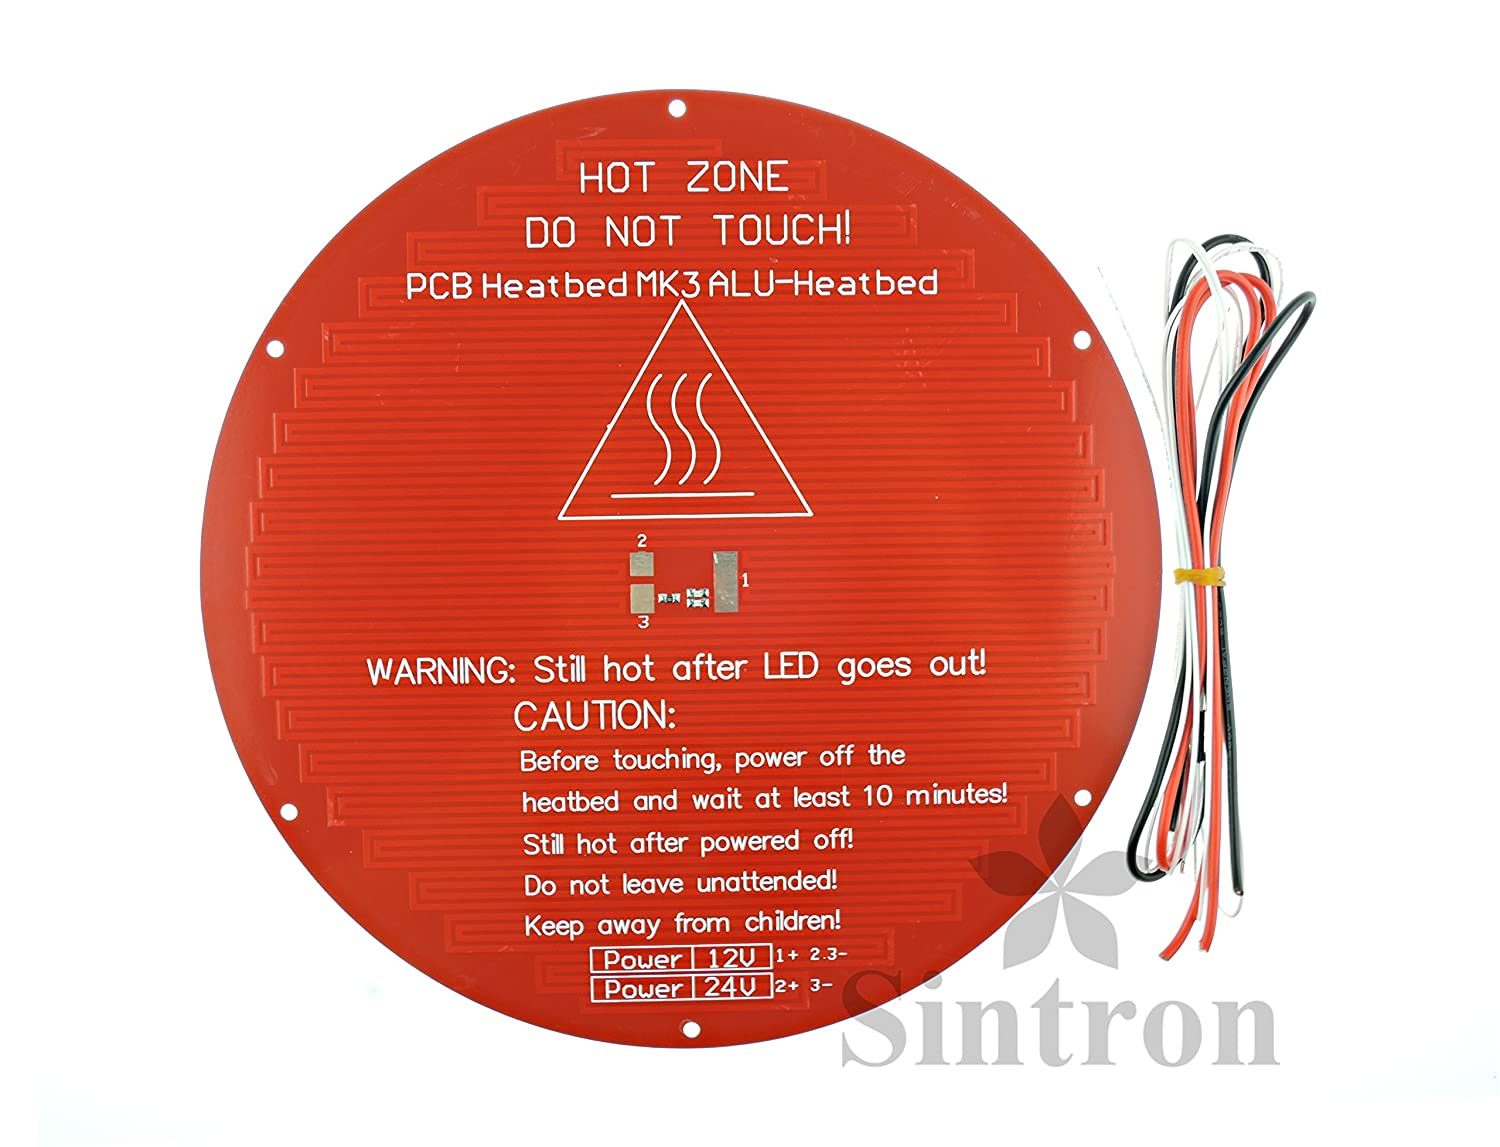 Sintron 3D Printer Drucker Heatbed Round 3mm Aluminum MK3 Heated Bed for RepRap Rostock Delta Kossel Mini with Thermistor /& Wire